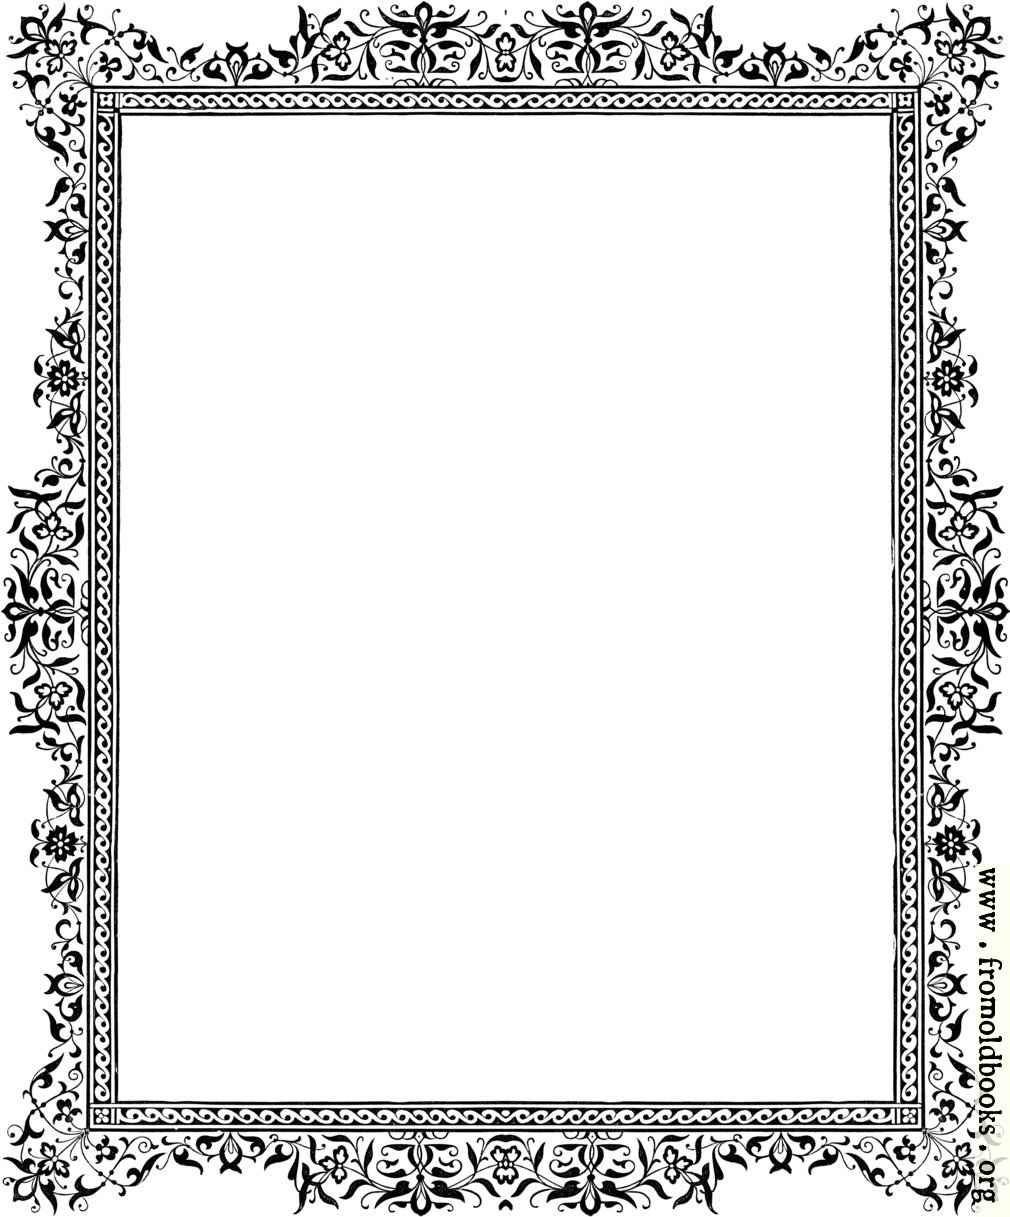 Decorative Clip Art Victorian Border Black And White